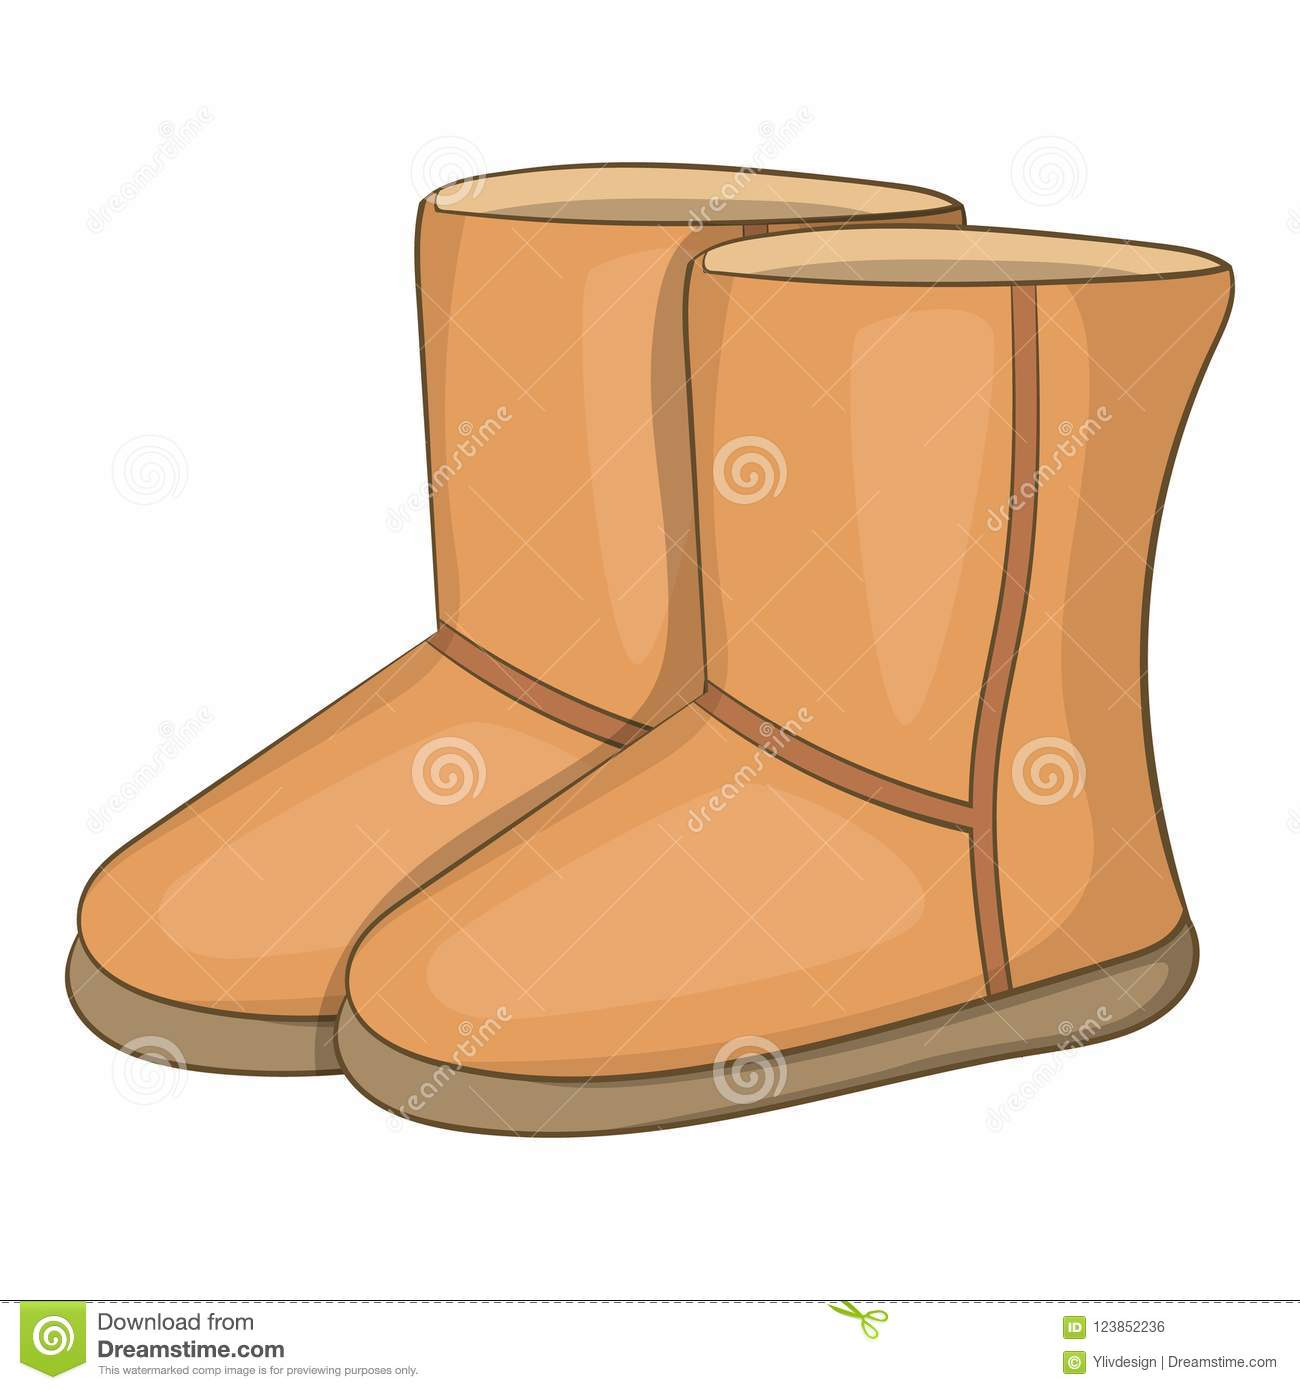 be9998d8e28 Winter Ugg Boots Icon, Cartoon Style Stock Illustration ...